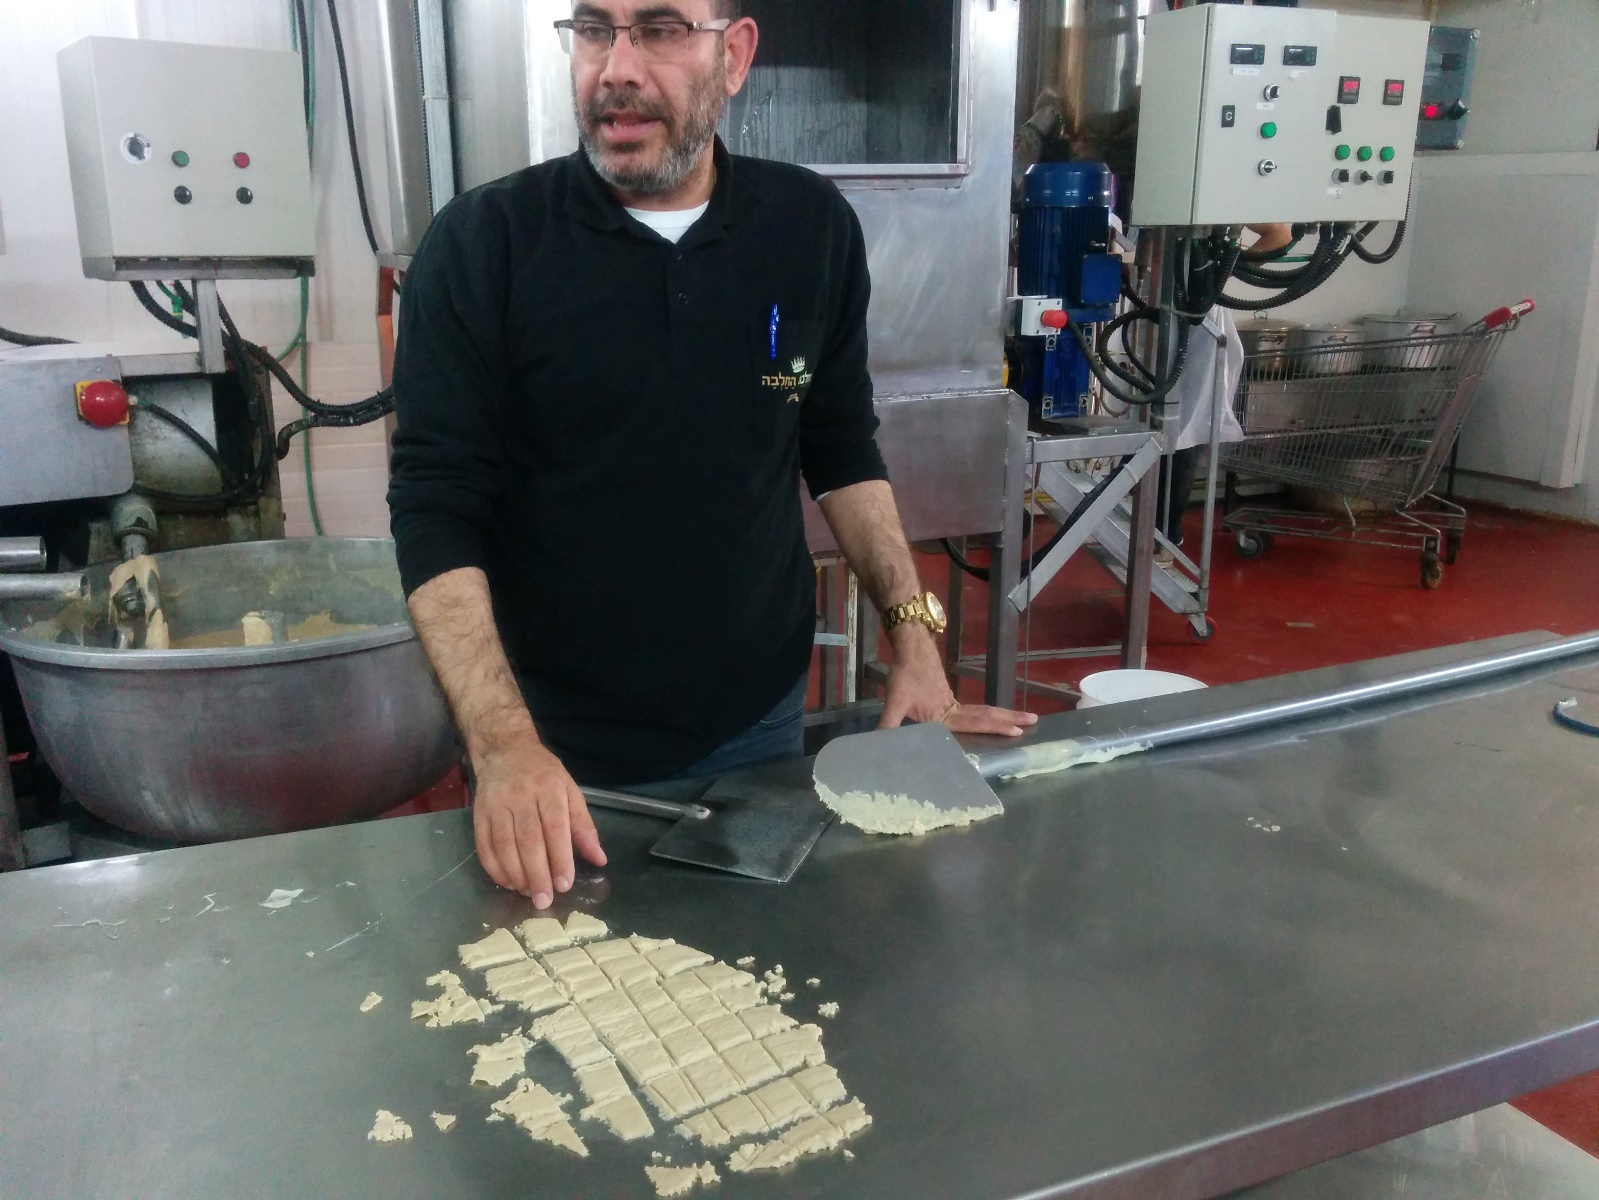 Shafrir Levi slicing freshly made vanilla halva at the Halva Kingdom factory. Photo by Abigail Klein Leichman